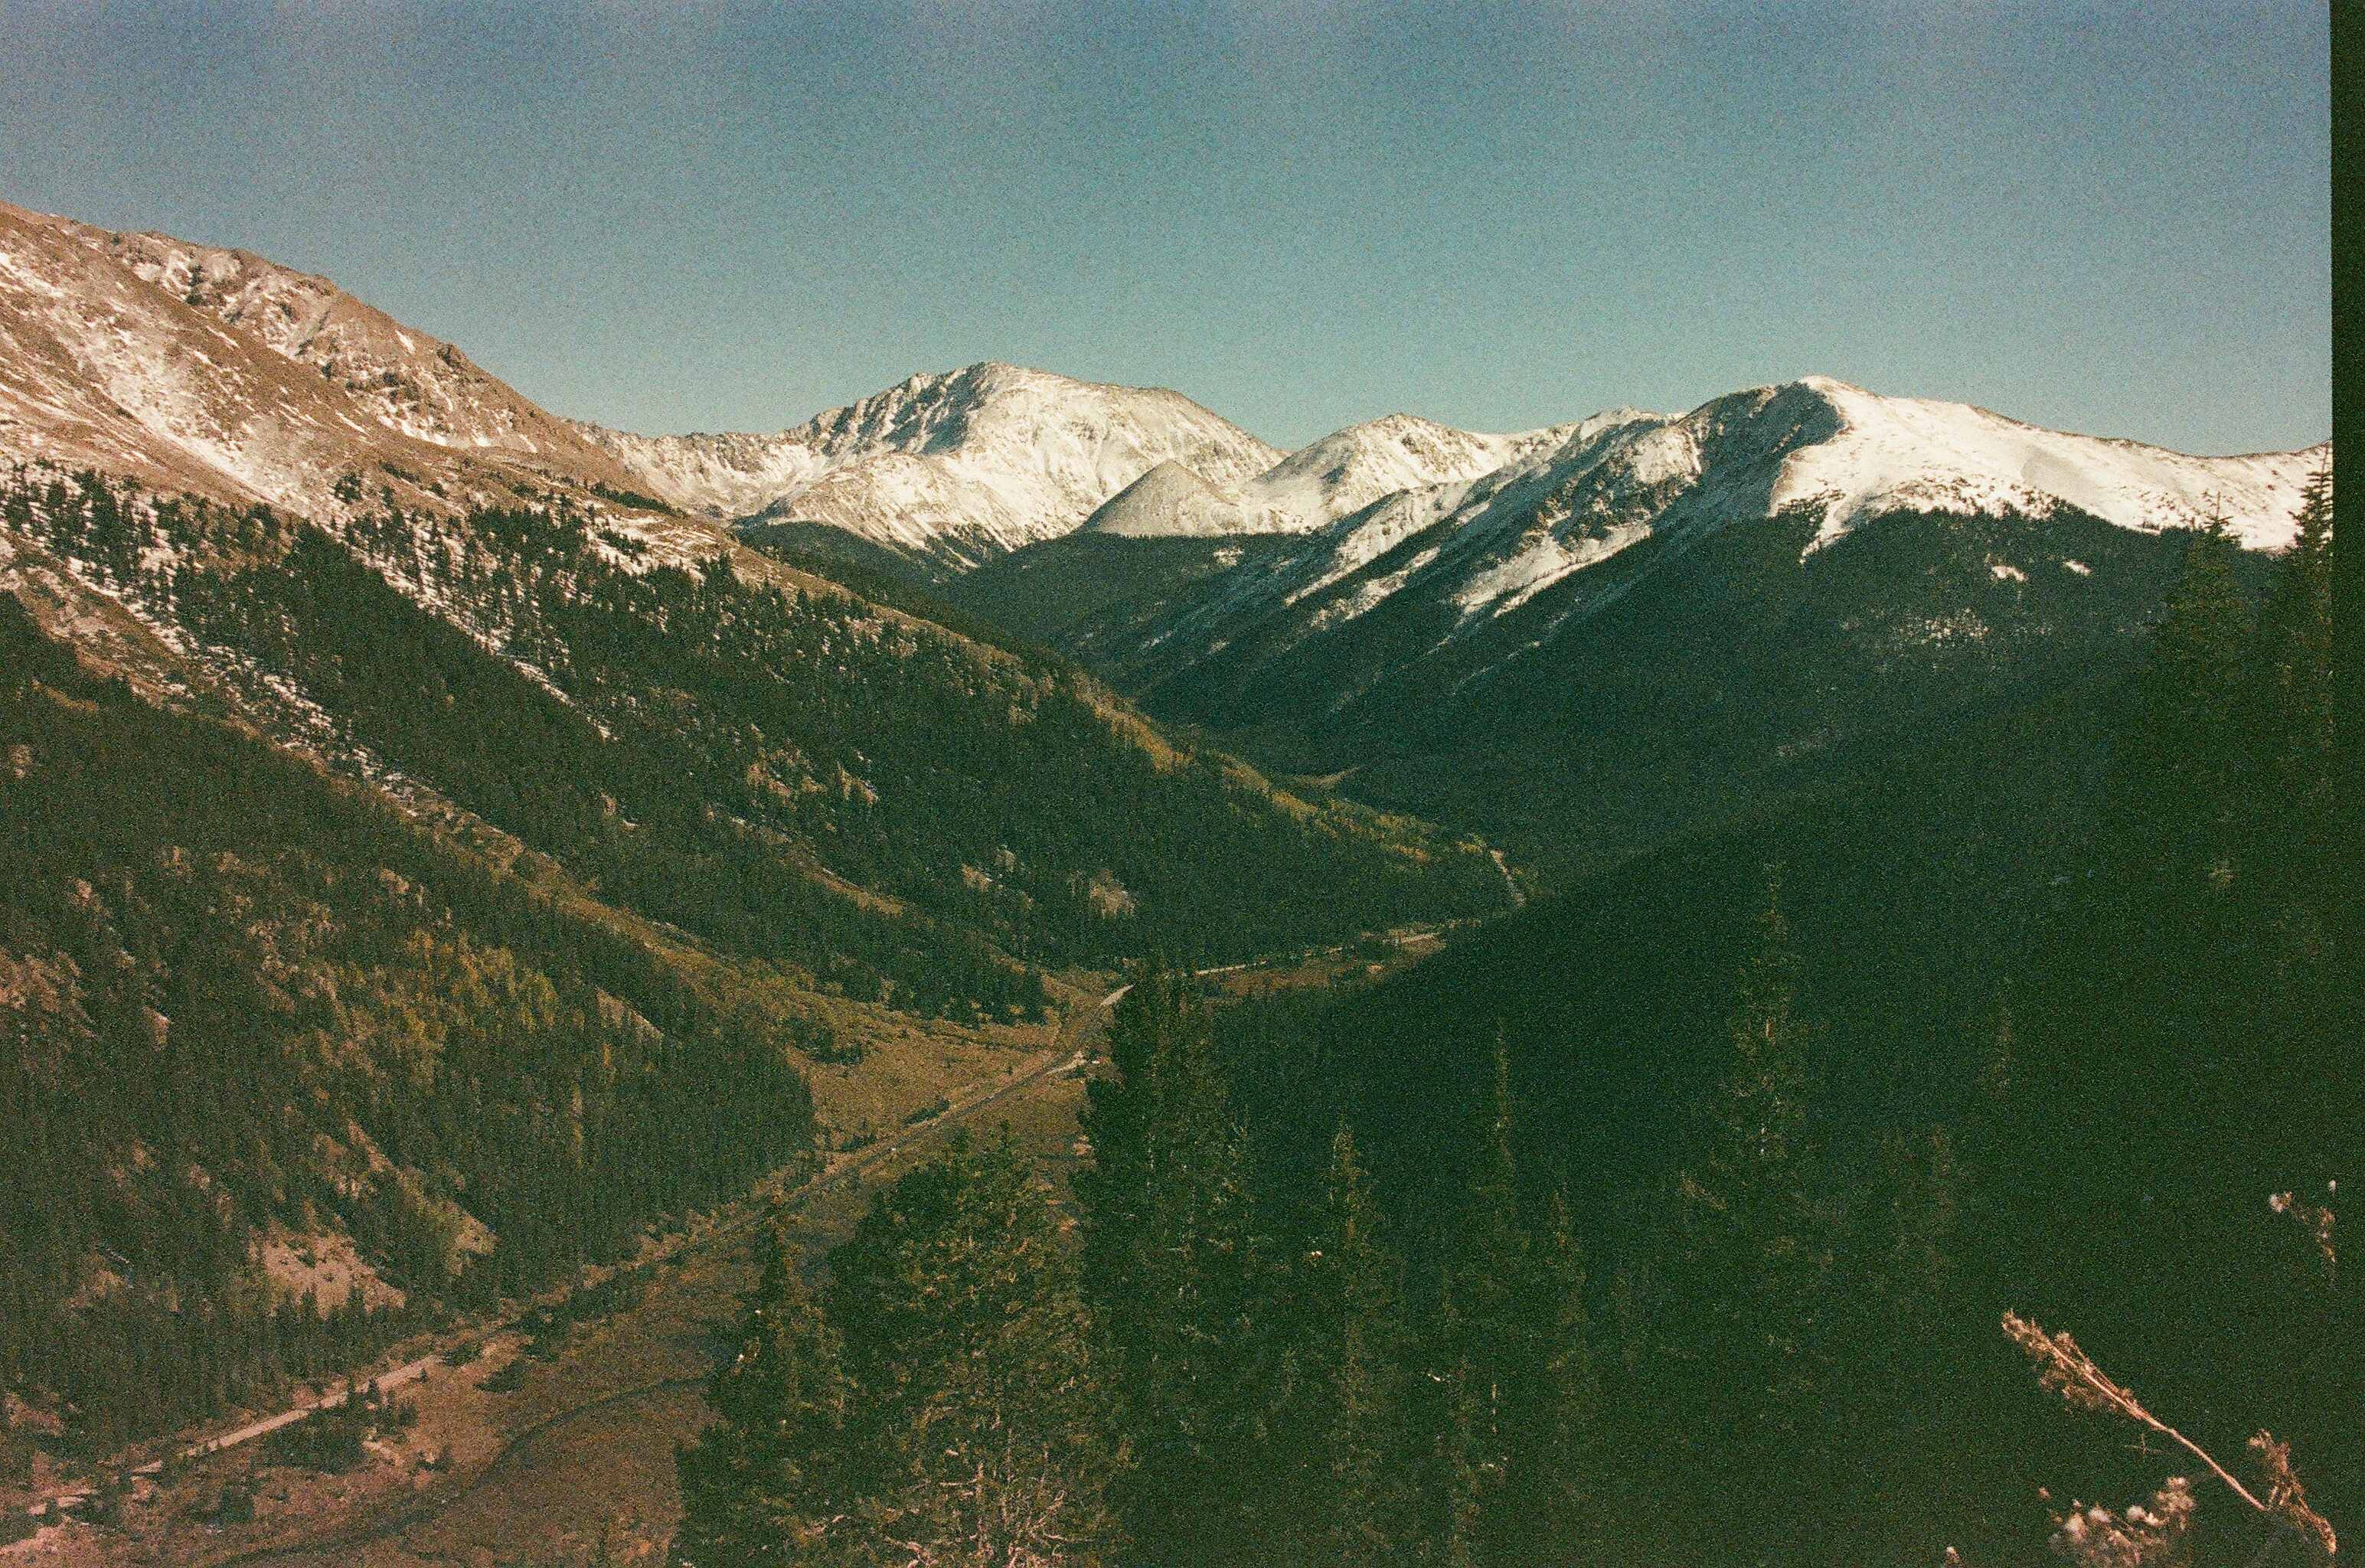 Independence pass, co, expired film photo